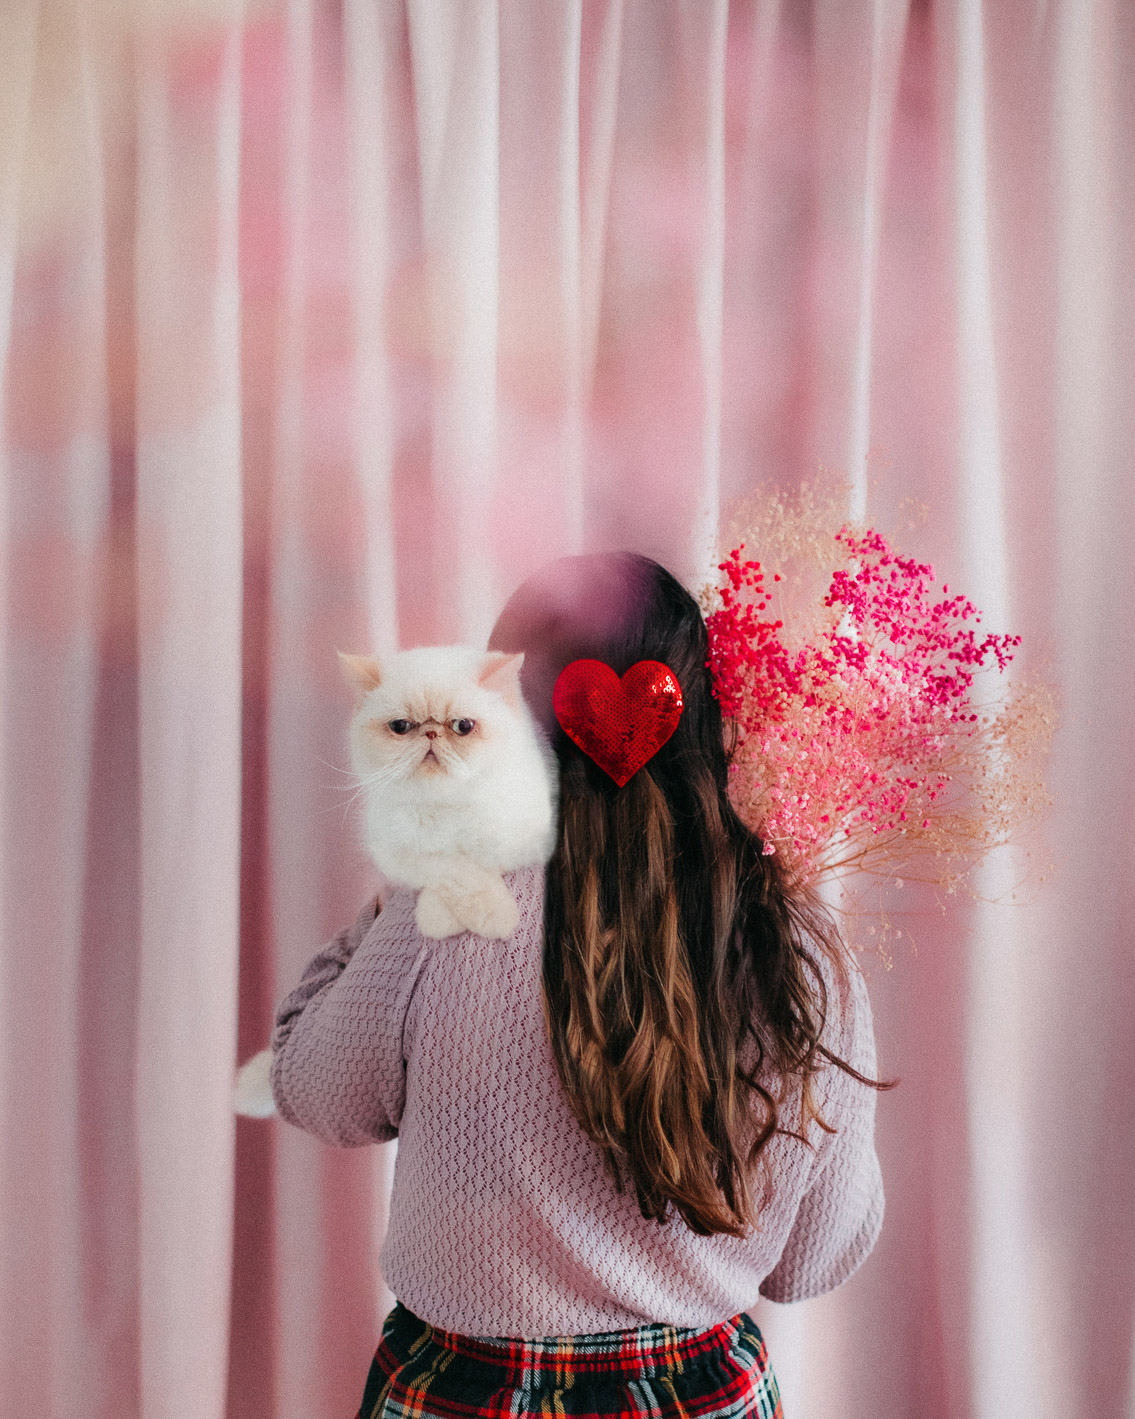 Pink curtains, pastel home - The cat, you and us